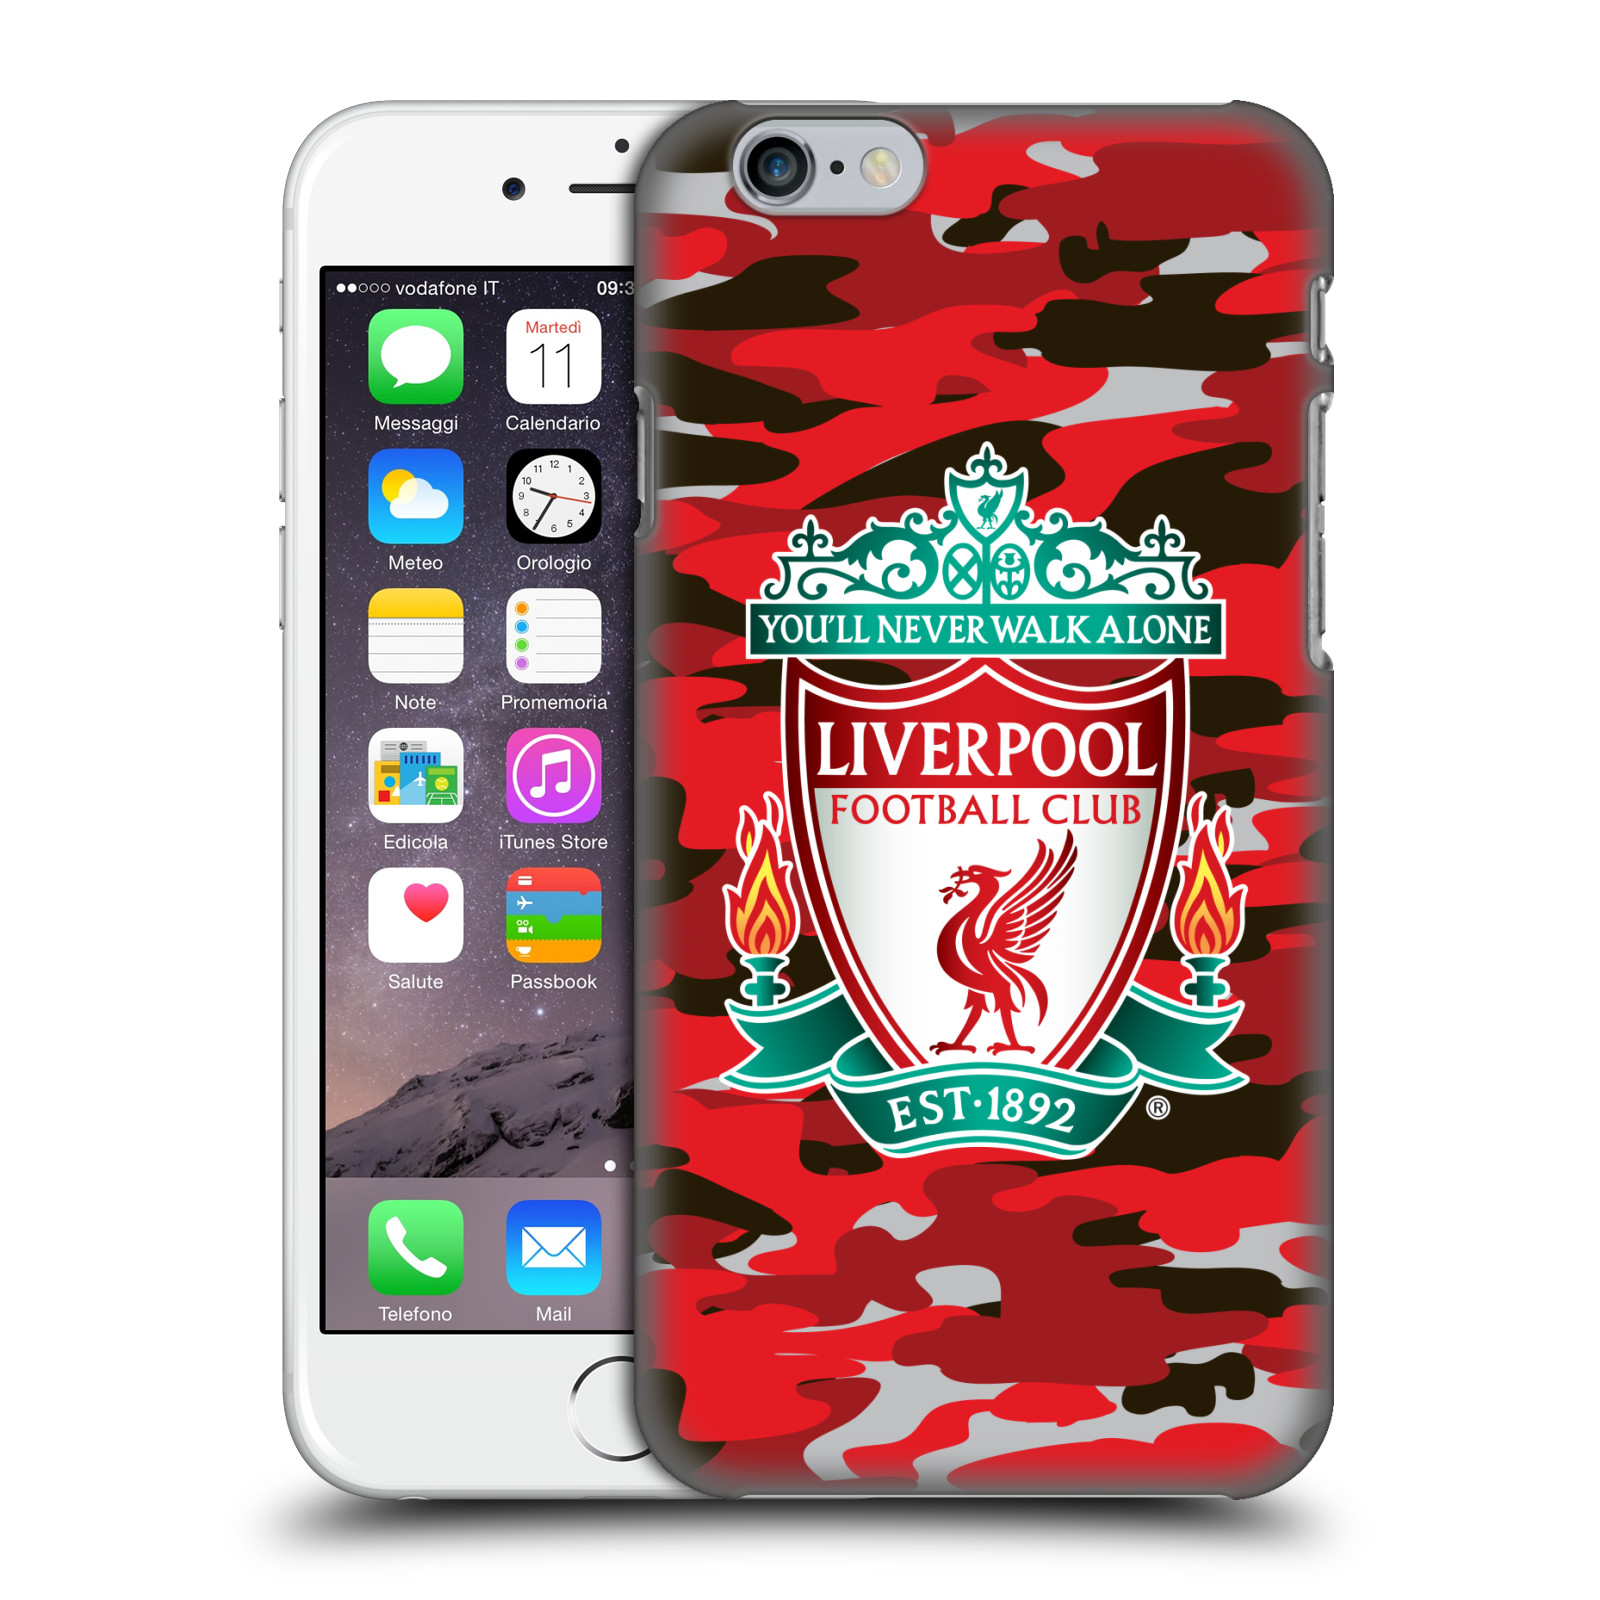 Liverpool FC LFC Camou-Club Colourways Crest